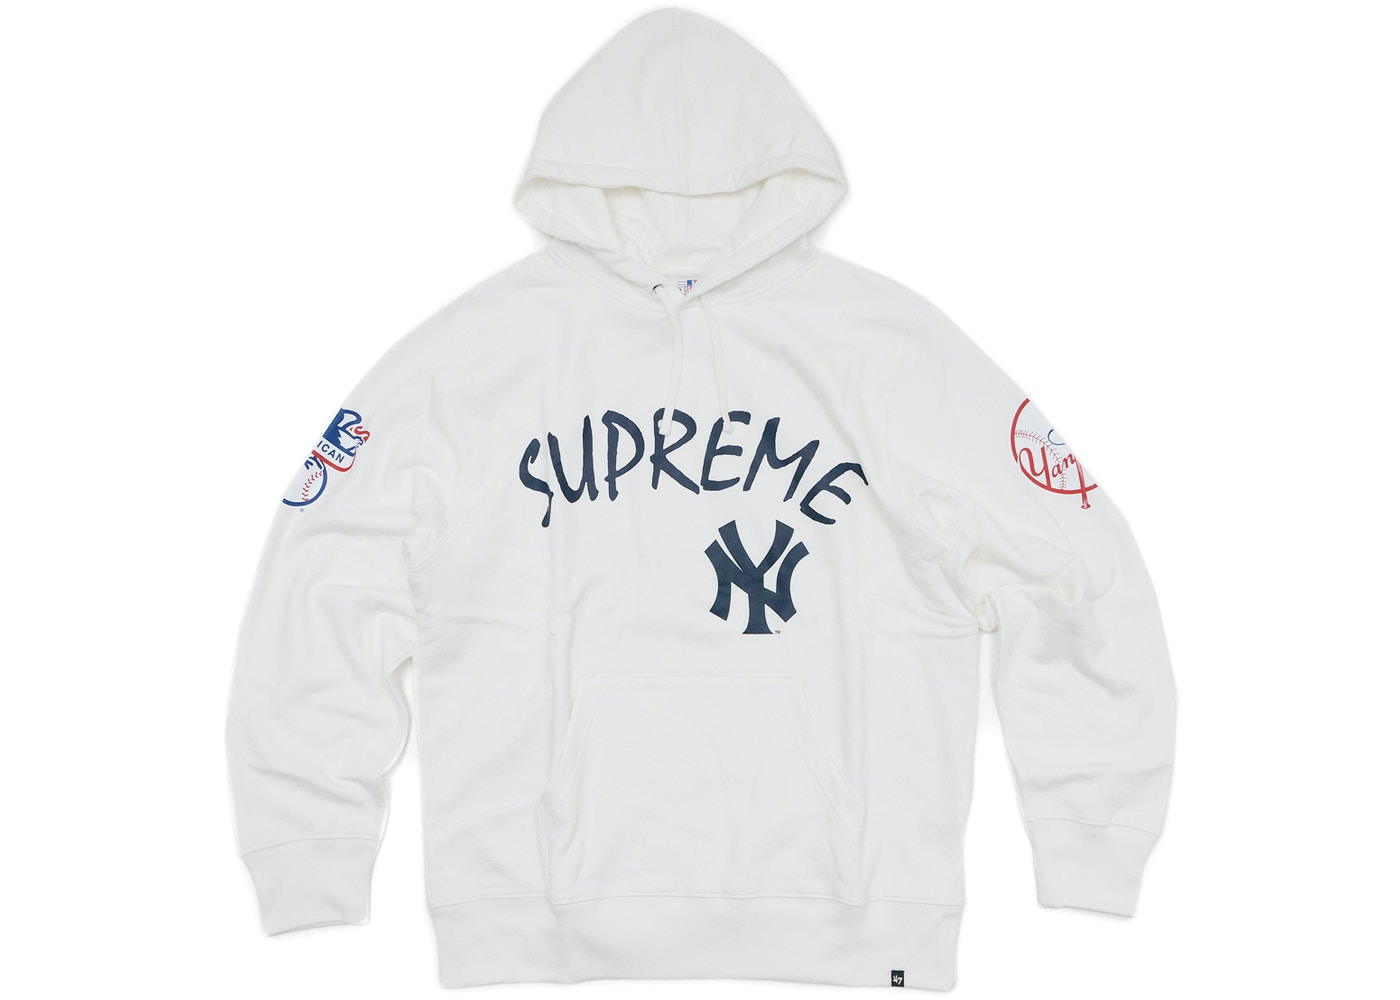 sports shoes 16a07 ad14a Supreme Yankees Hooded Sweatshirt White